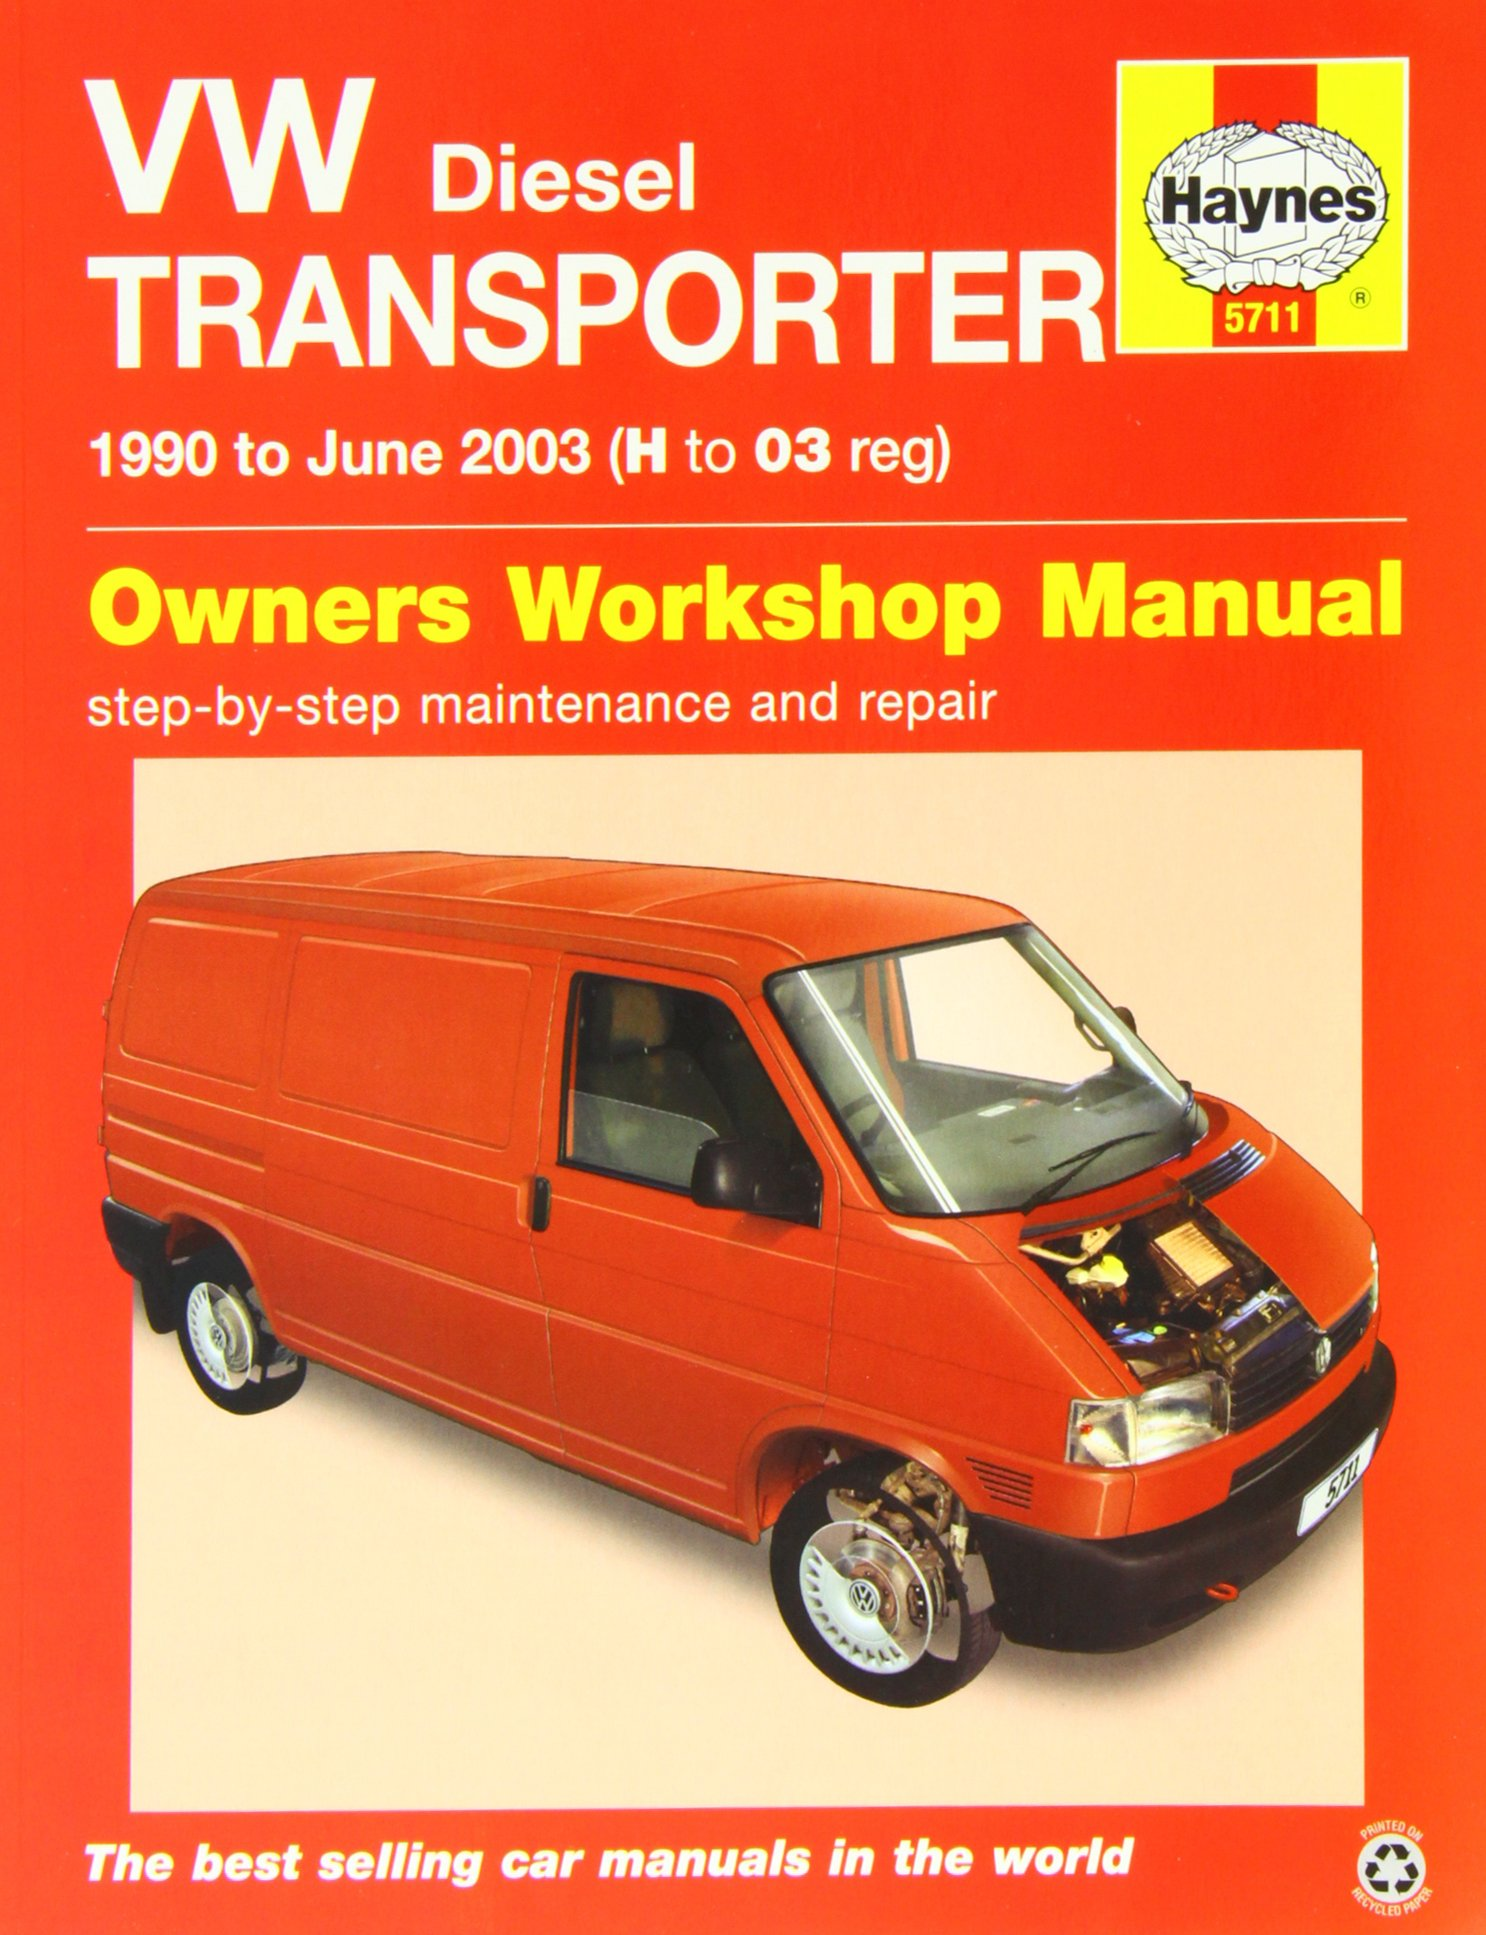 Vw t4 transporter diesel 90 june 03 haynes repair manual haynes service and repair manuals amazon co uk anon 9780857337115 books